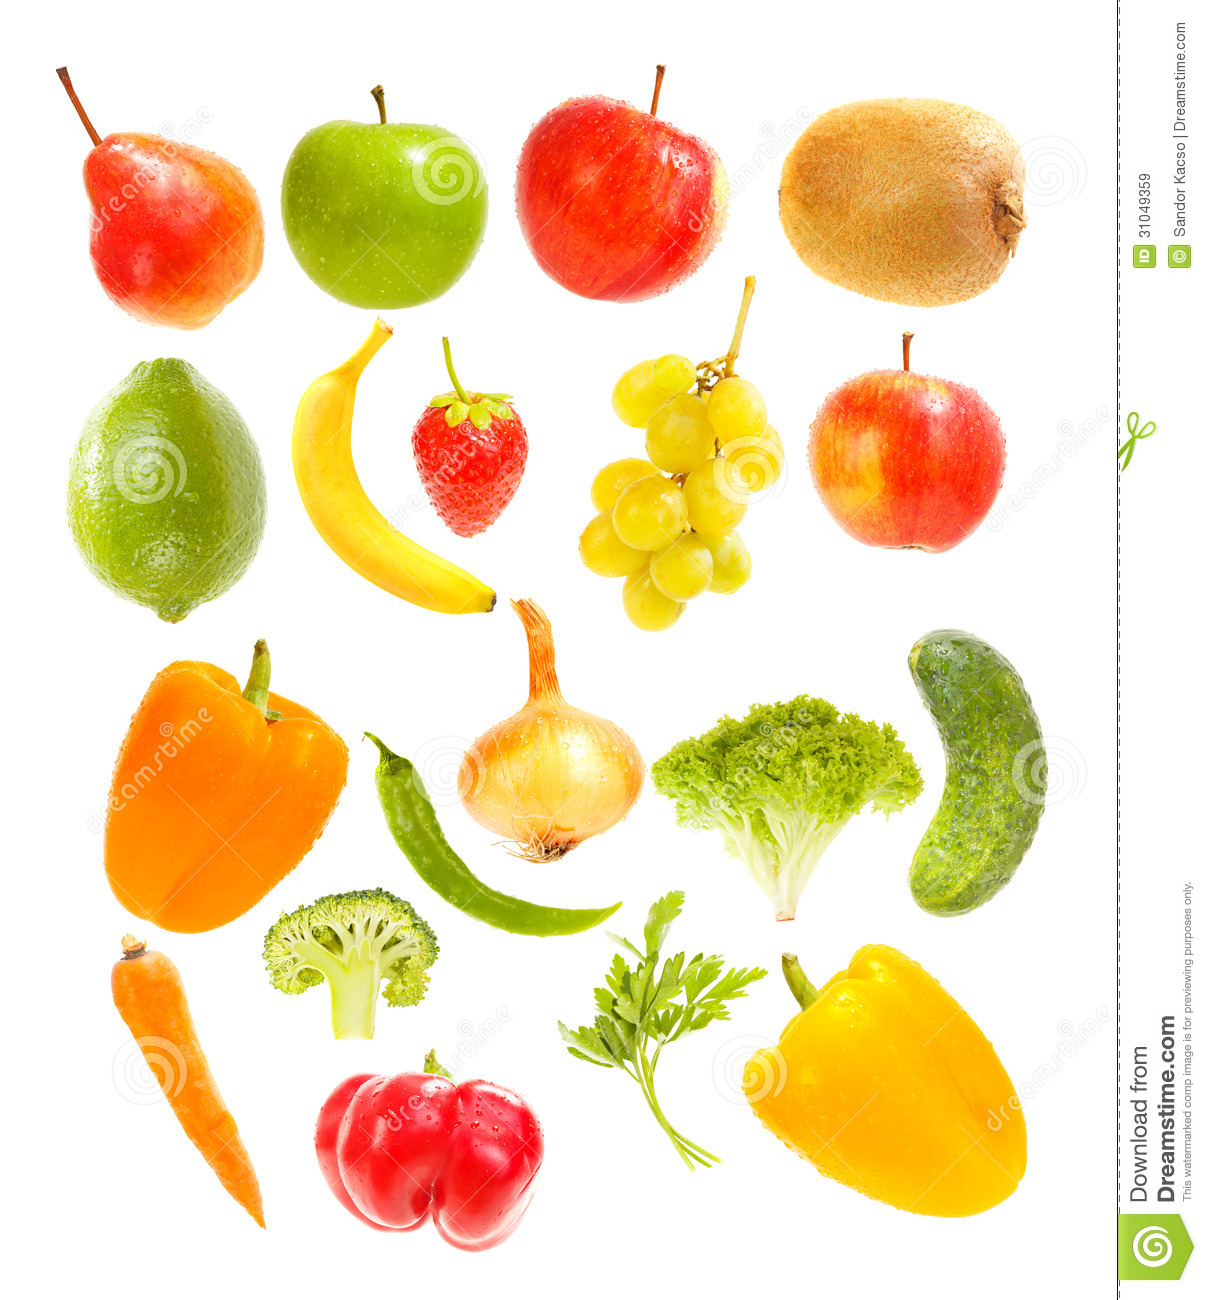 Falling Fruits And Vegetables Royalty Free Stock Images ...